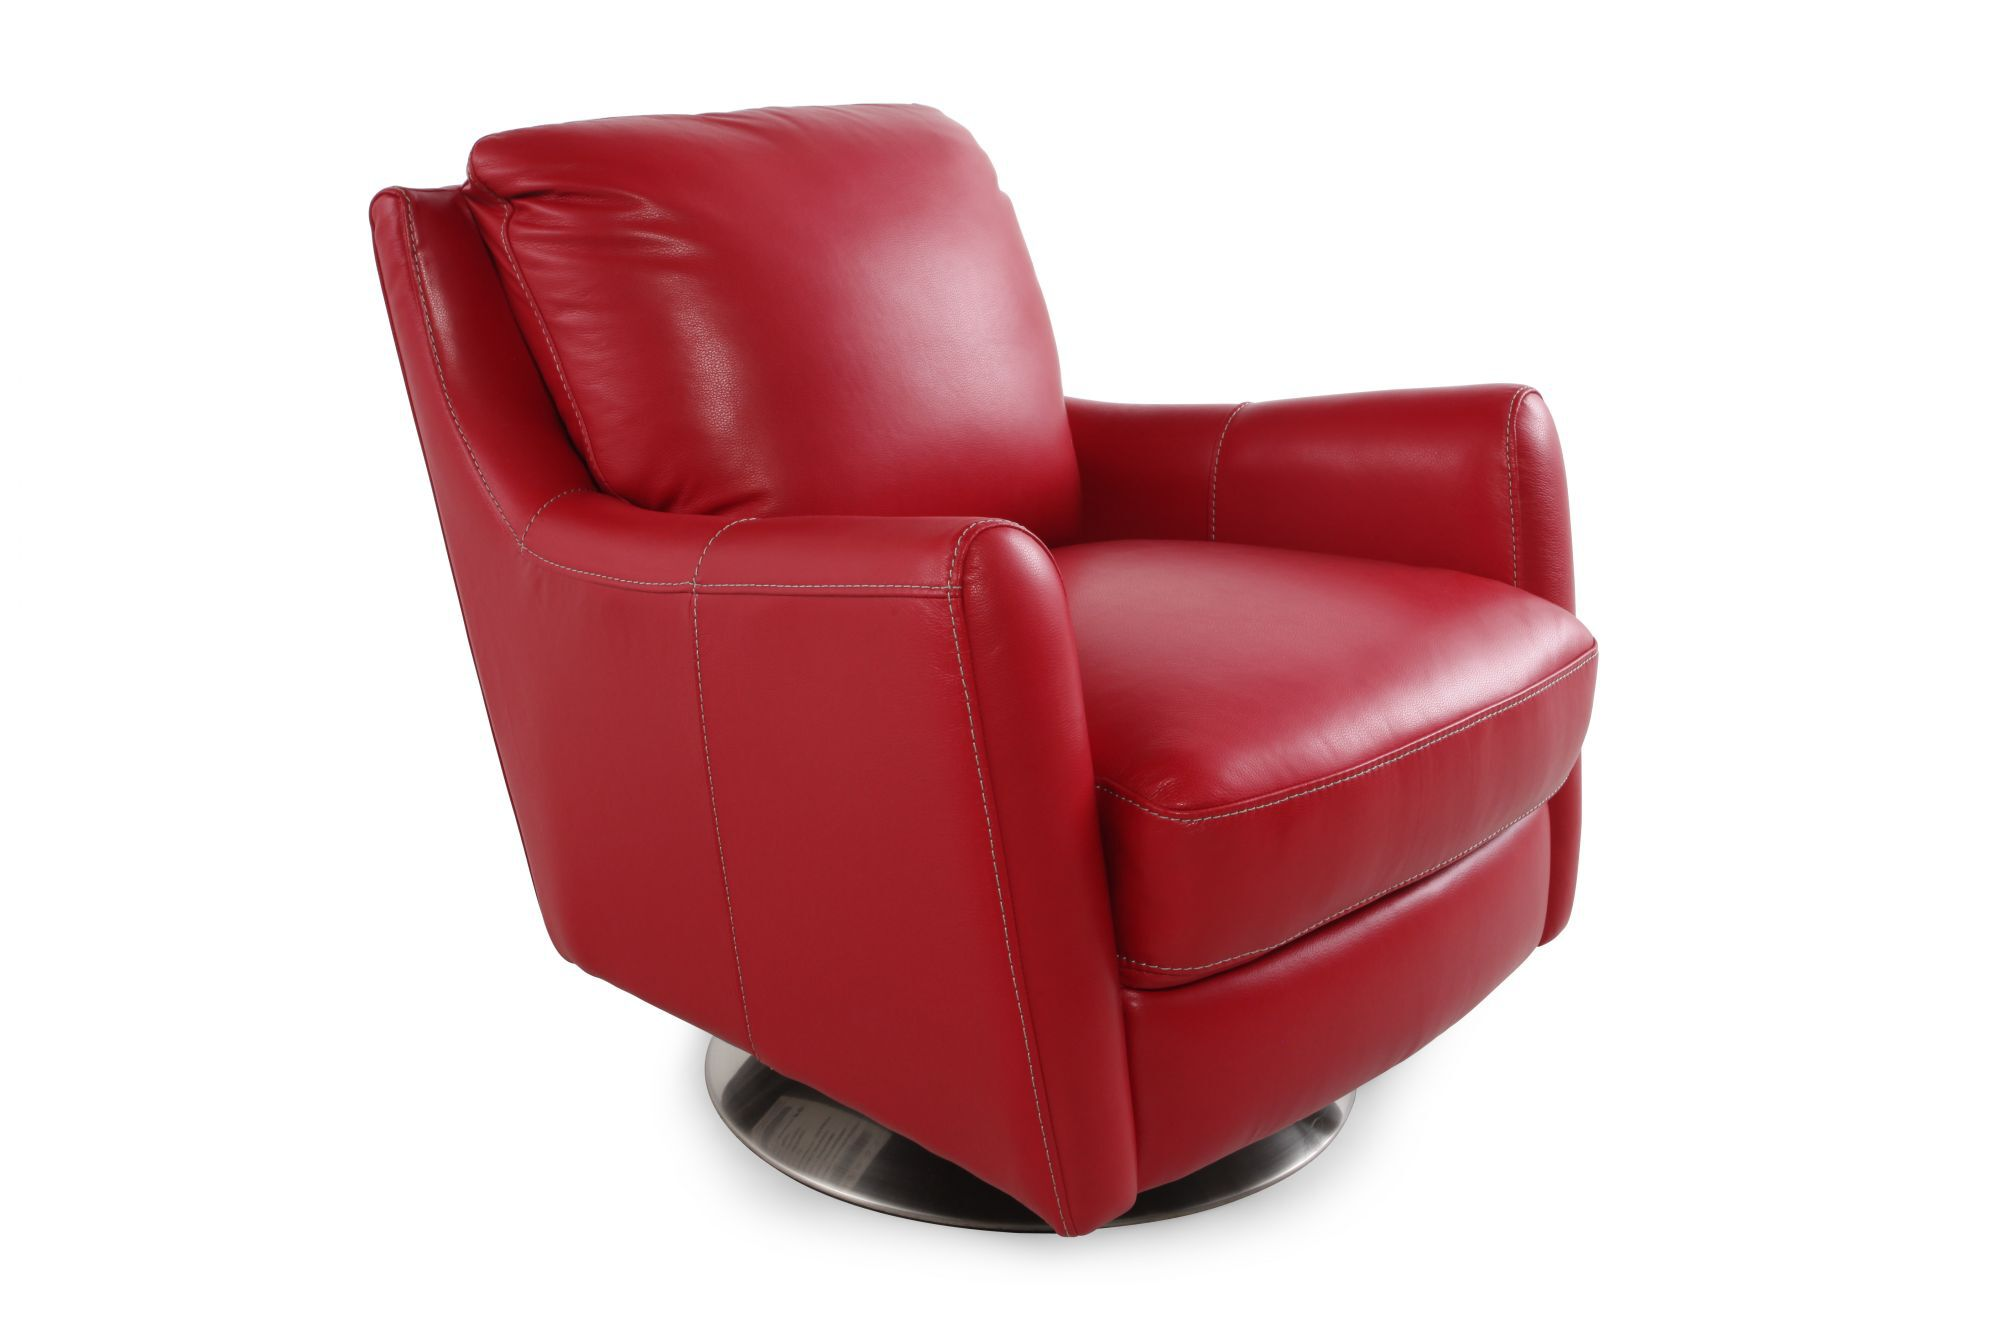 Red Swivel Chair La Z Boy Xavier Red Leather Swivel Chair Mathis Brothers